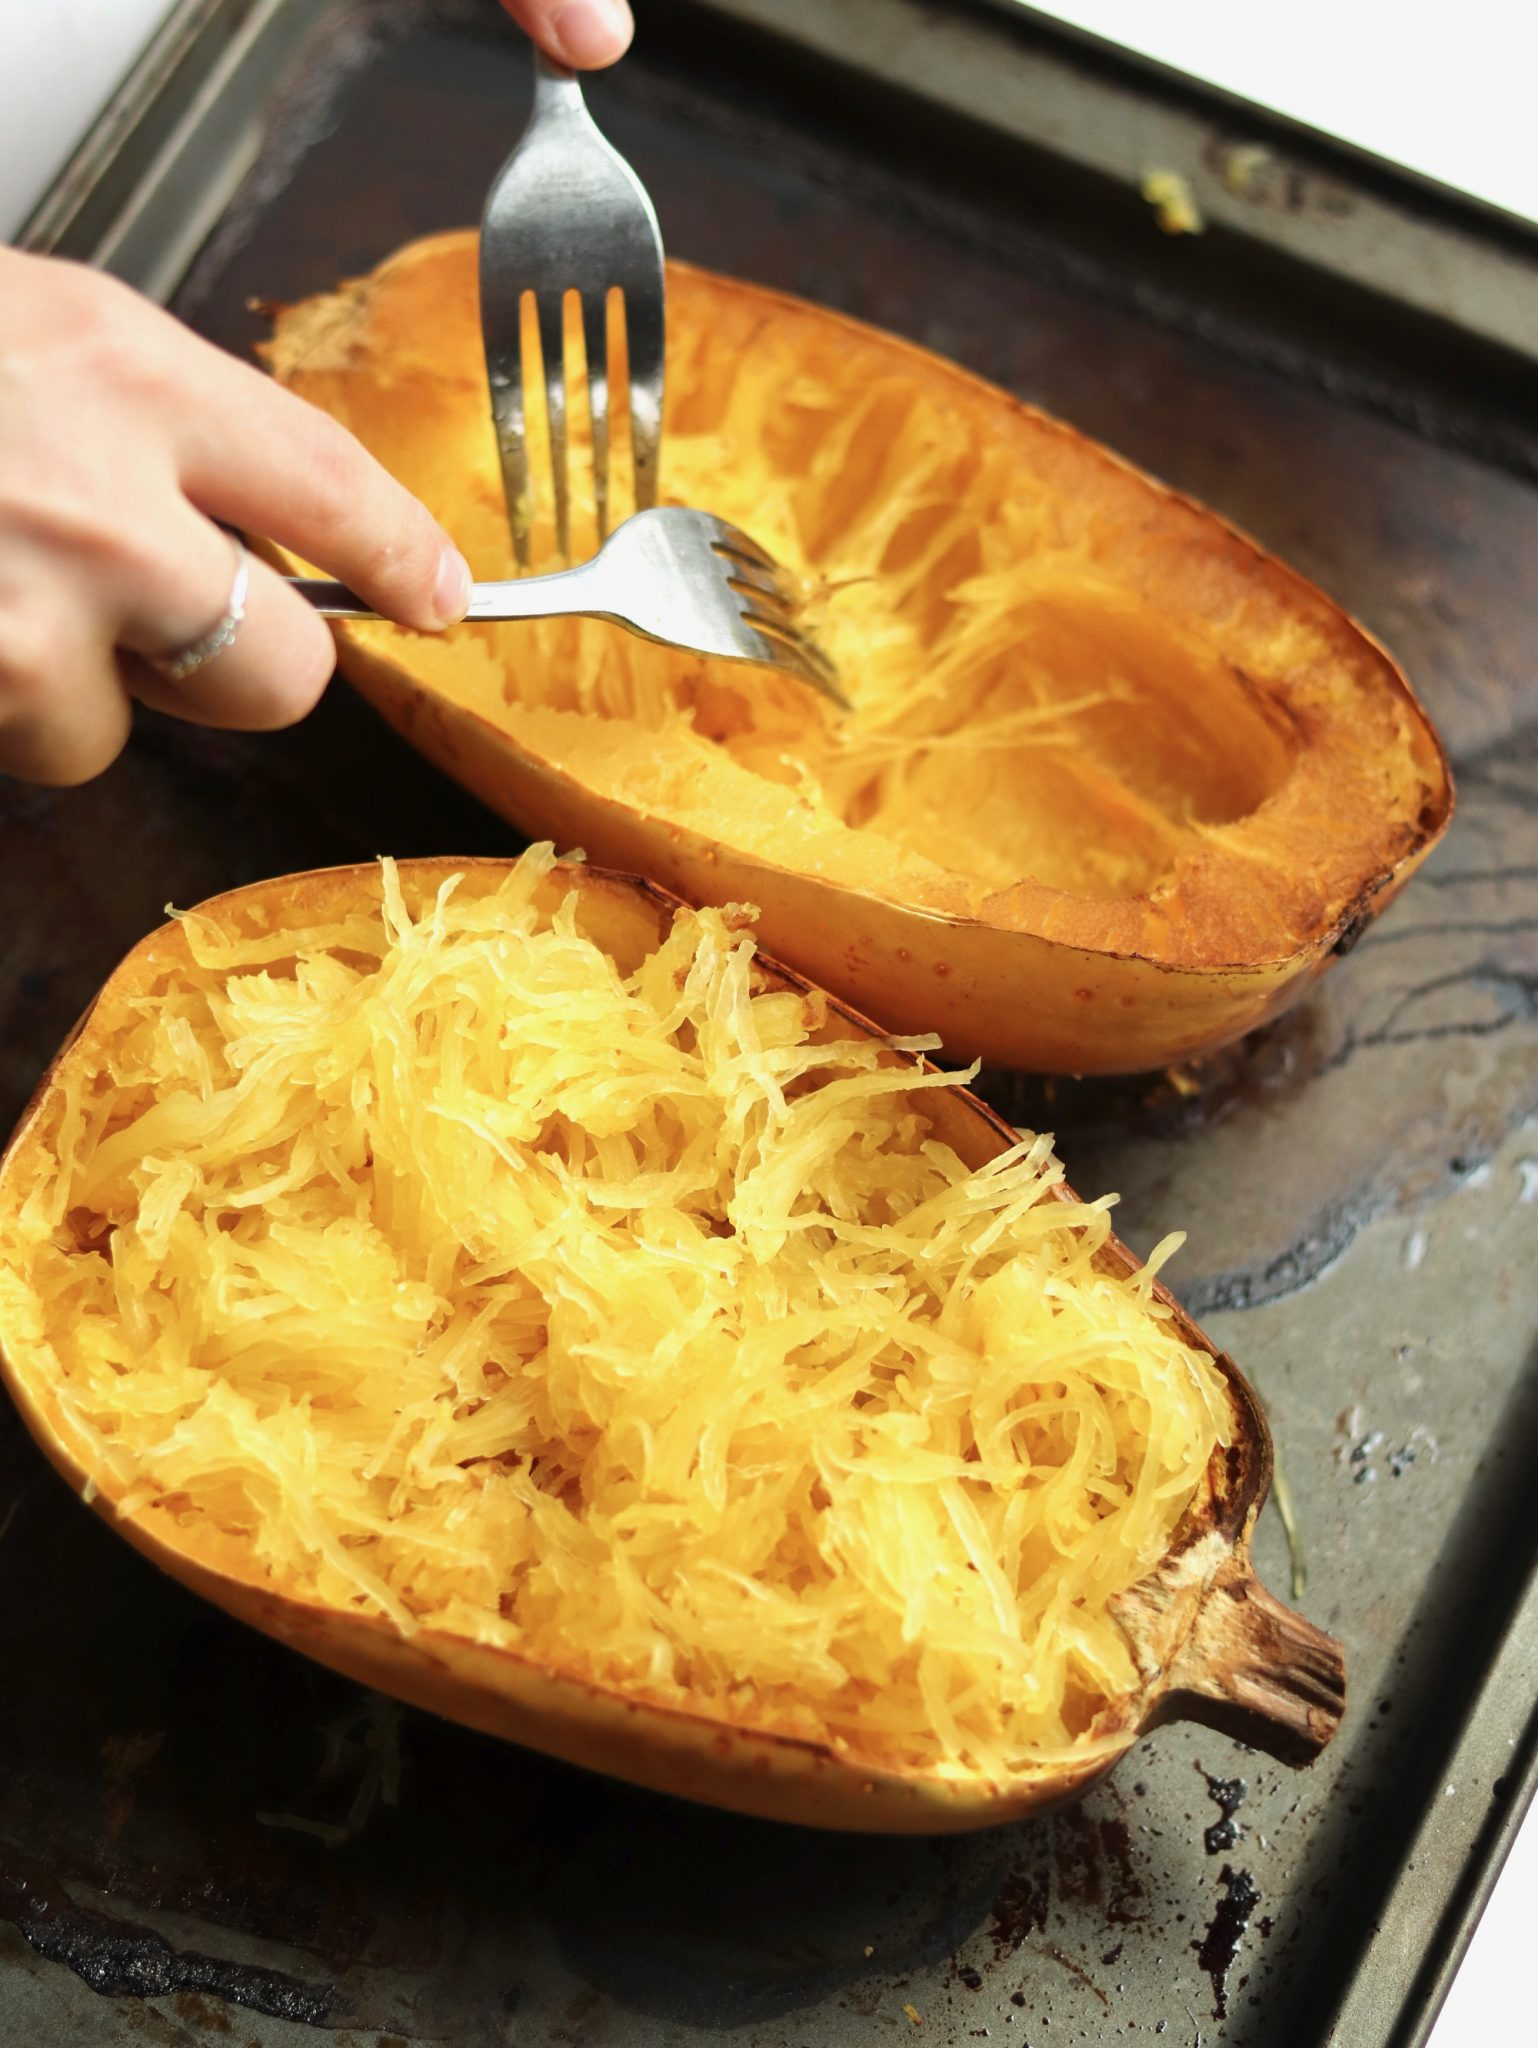 Use two forks to gently pull the cooked spaghetti squash flesh from the hard shells on a baking sheet.